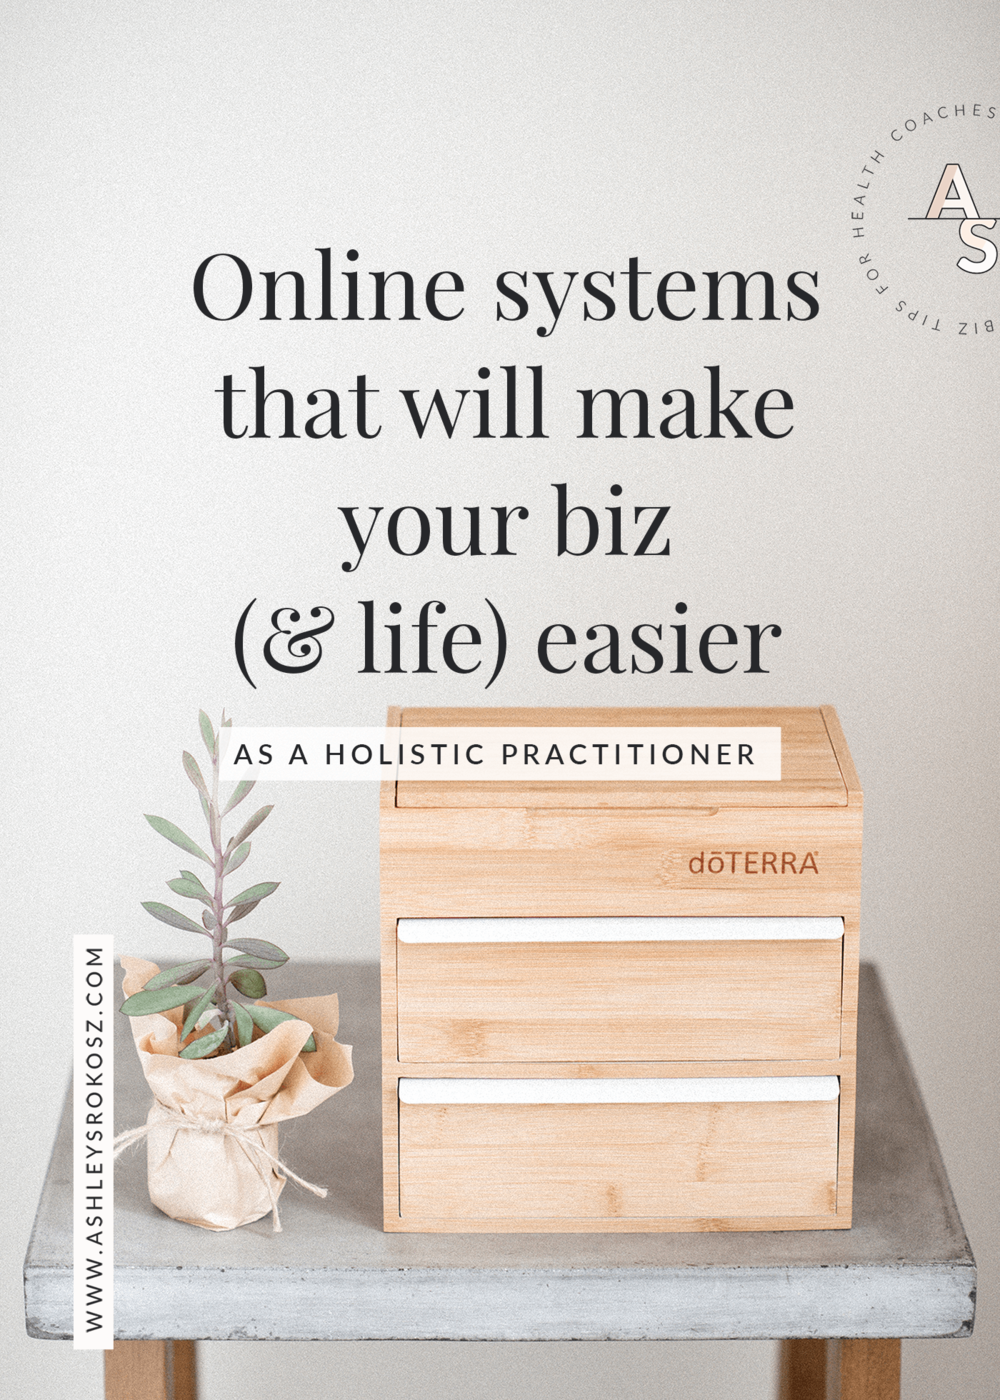 Are you a holistic health coach who is confused by all the different online tools and systems there are to run your business? Click here for 4 online business tools that you will use everyday in your business and actually DO save hours of time. P.S. 2 of them are completely free! These are perfect for holistic nutritionists, health coaches, or yoga teachers.